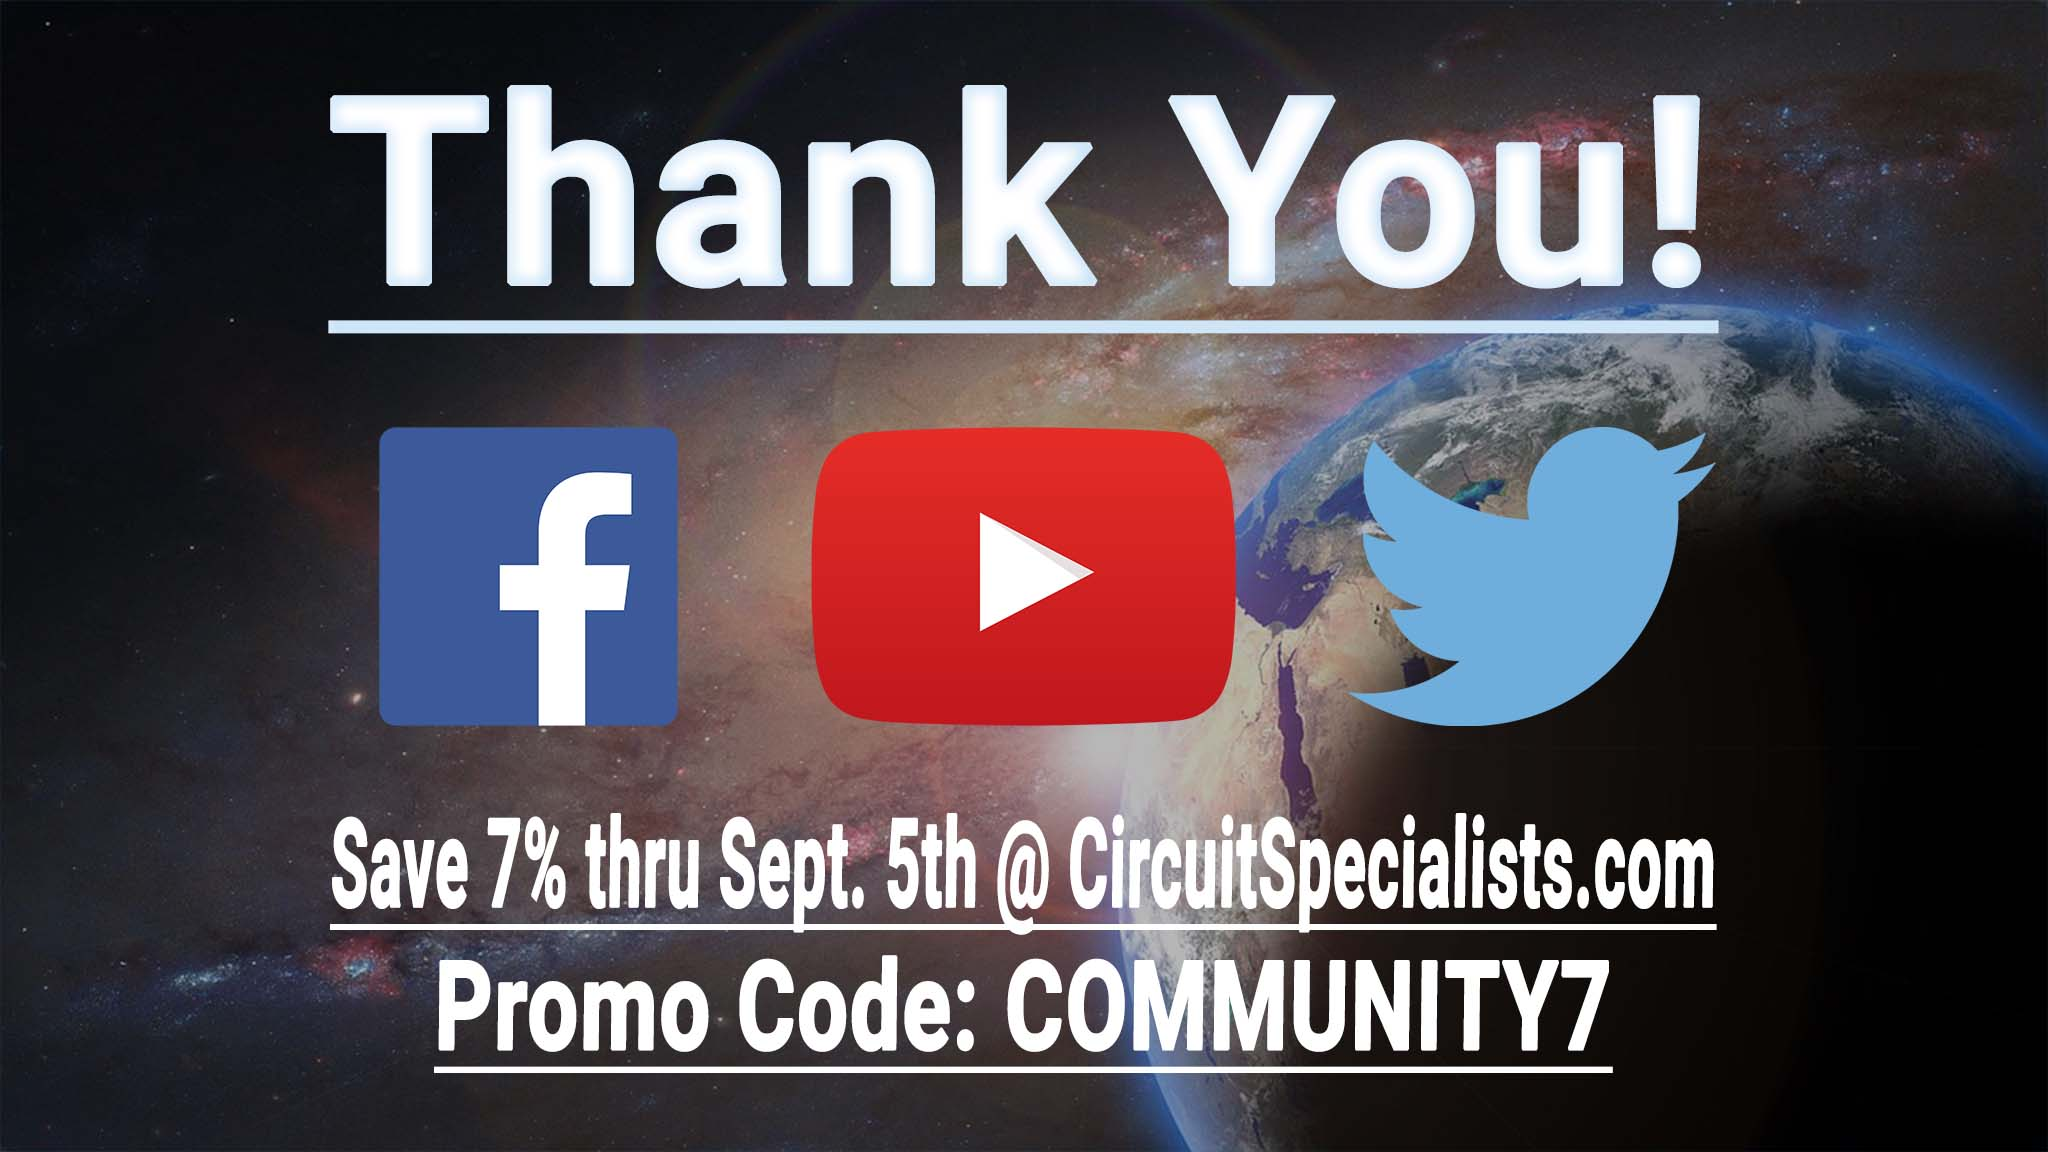 Circuit Specialists Wants To Say Thank You Discount Inside For